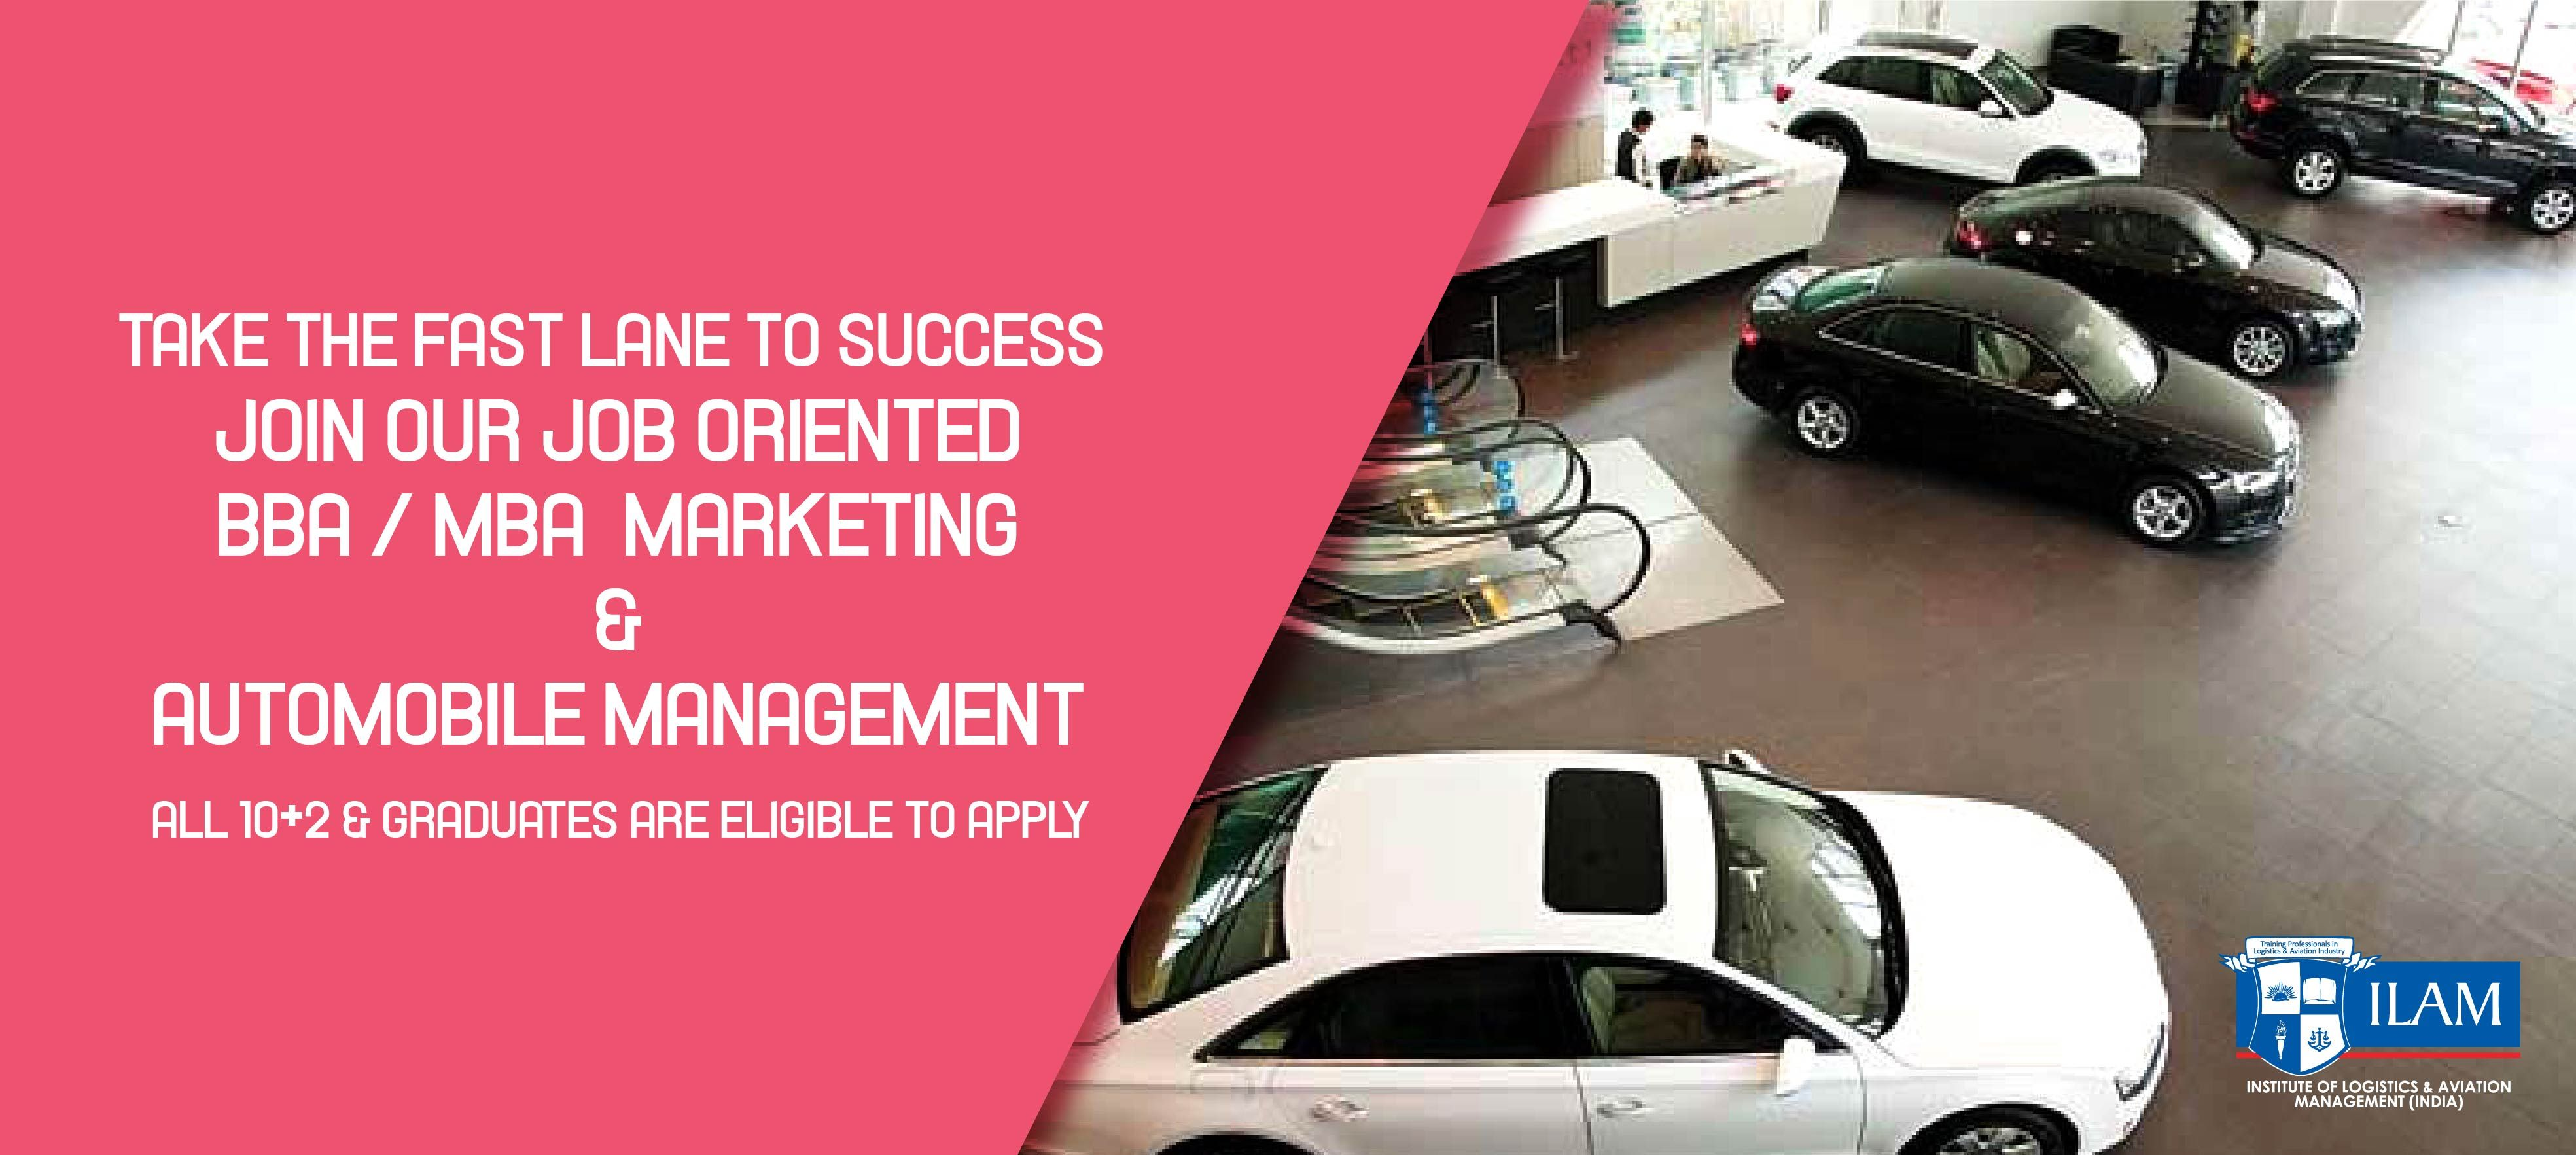 India's leading Institute Inviting applications for #BBA / #MBA #Marketing  & #Automobile #Management *get 100… | Mobile management, Automobile  companies, Marketing